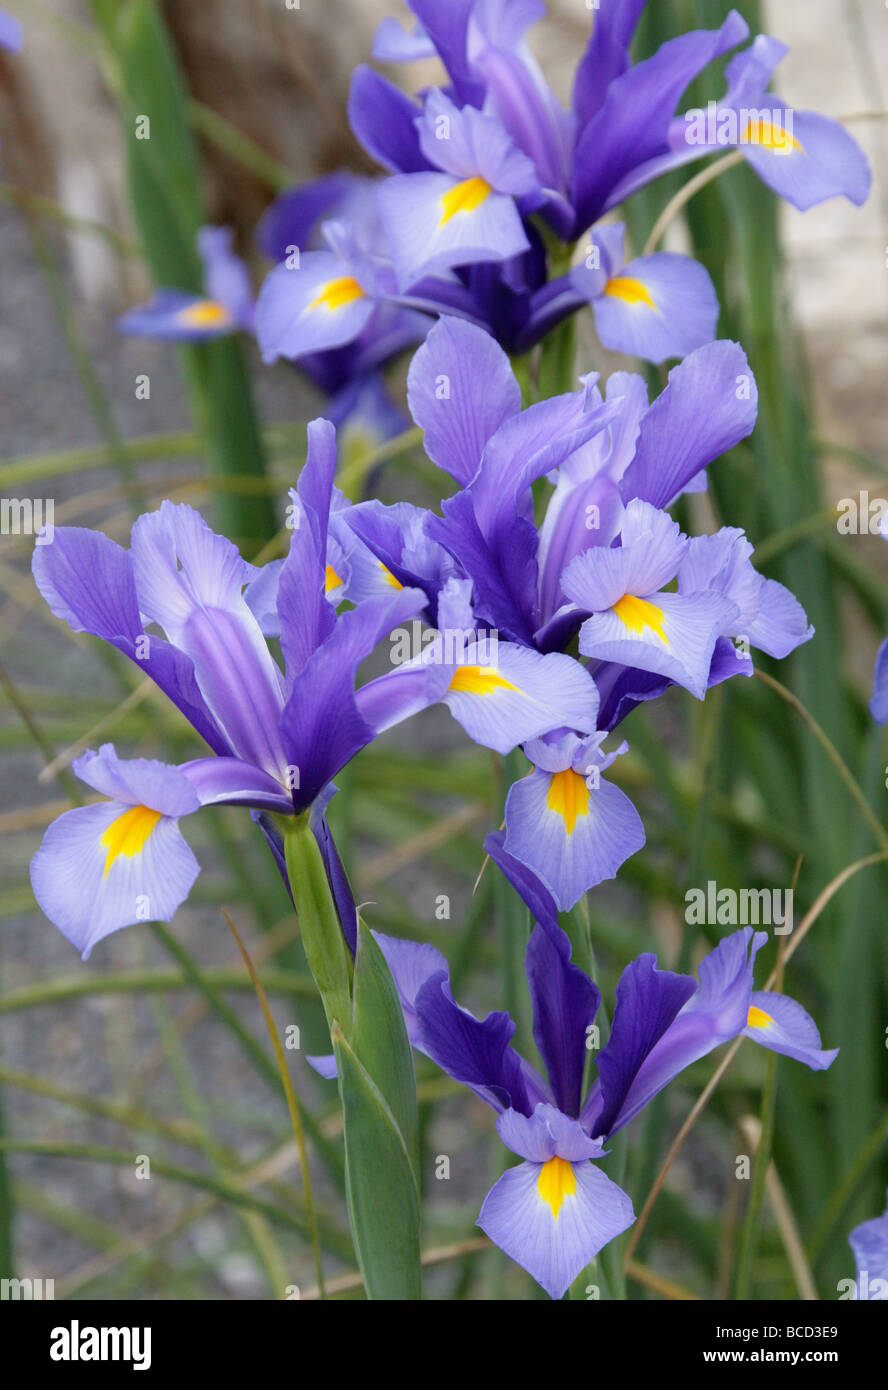 Spanish Iris, Iris xiphium, Iridaceae, Southwest and Southeast Europe and North Africa. Aka the Small Bulbous-rooted - Stock Image